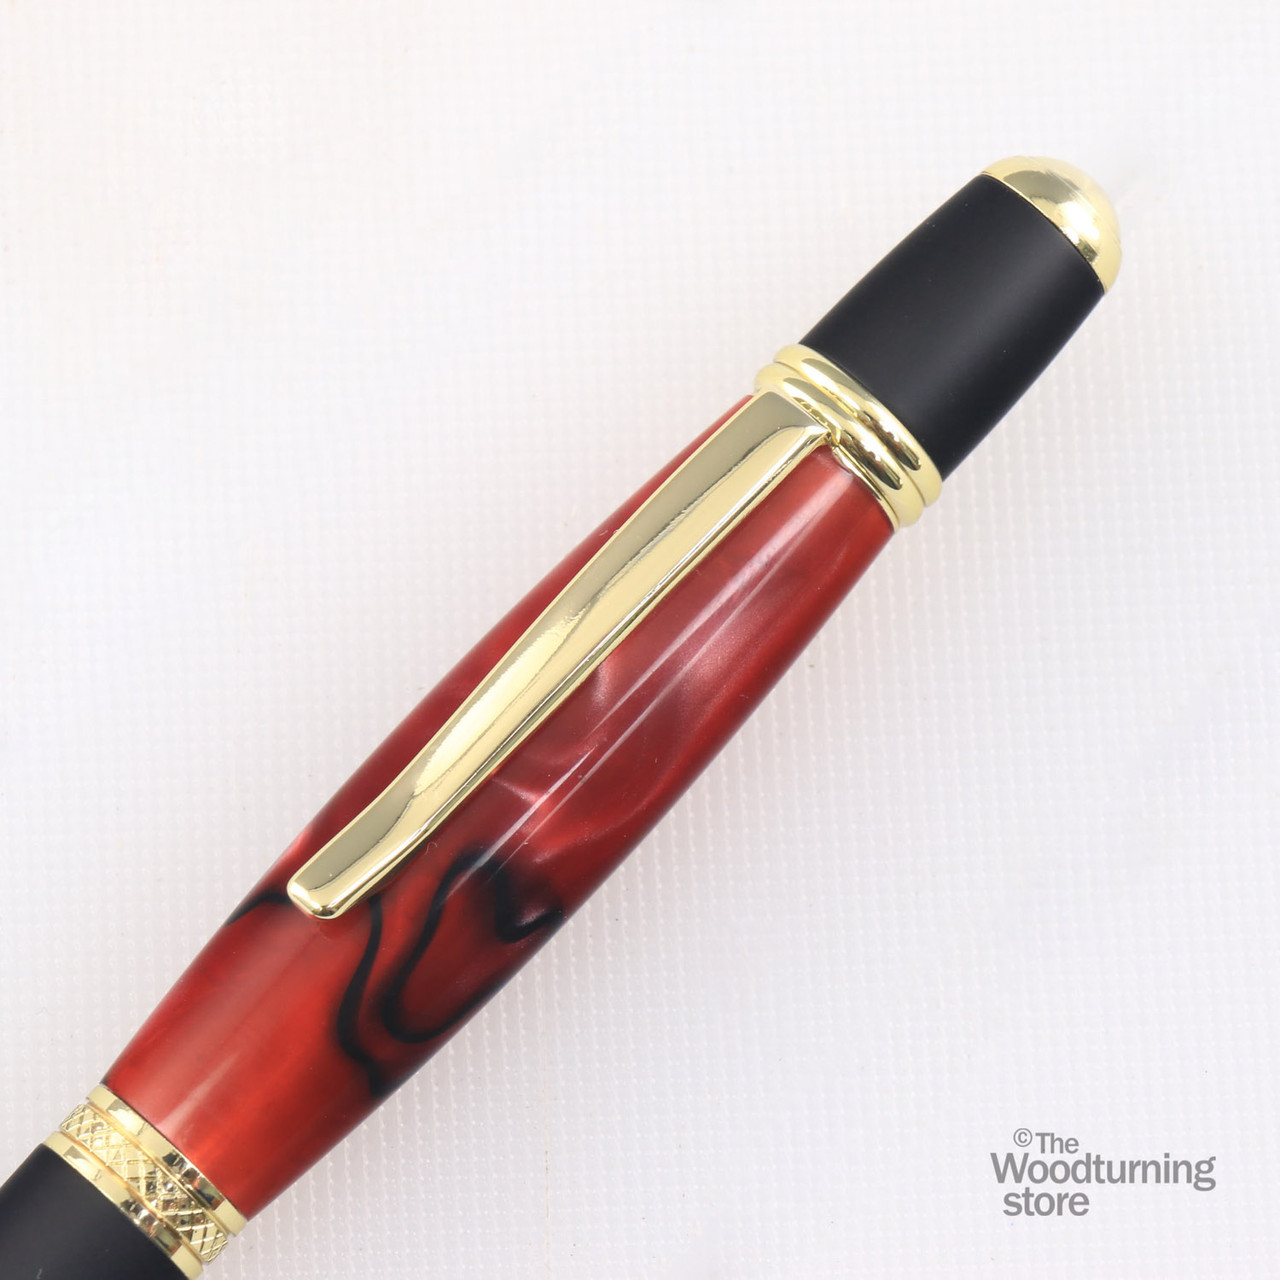 Legacy Viceroy Pen Kit - Gold and Matte Black Chrome